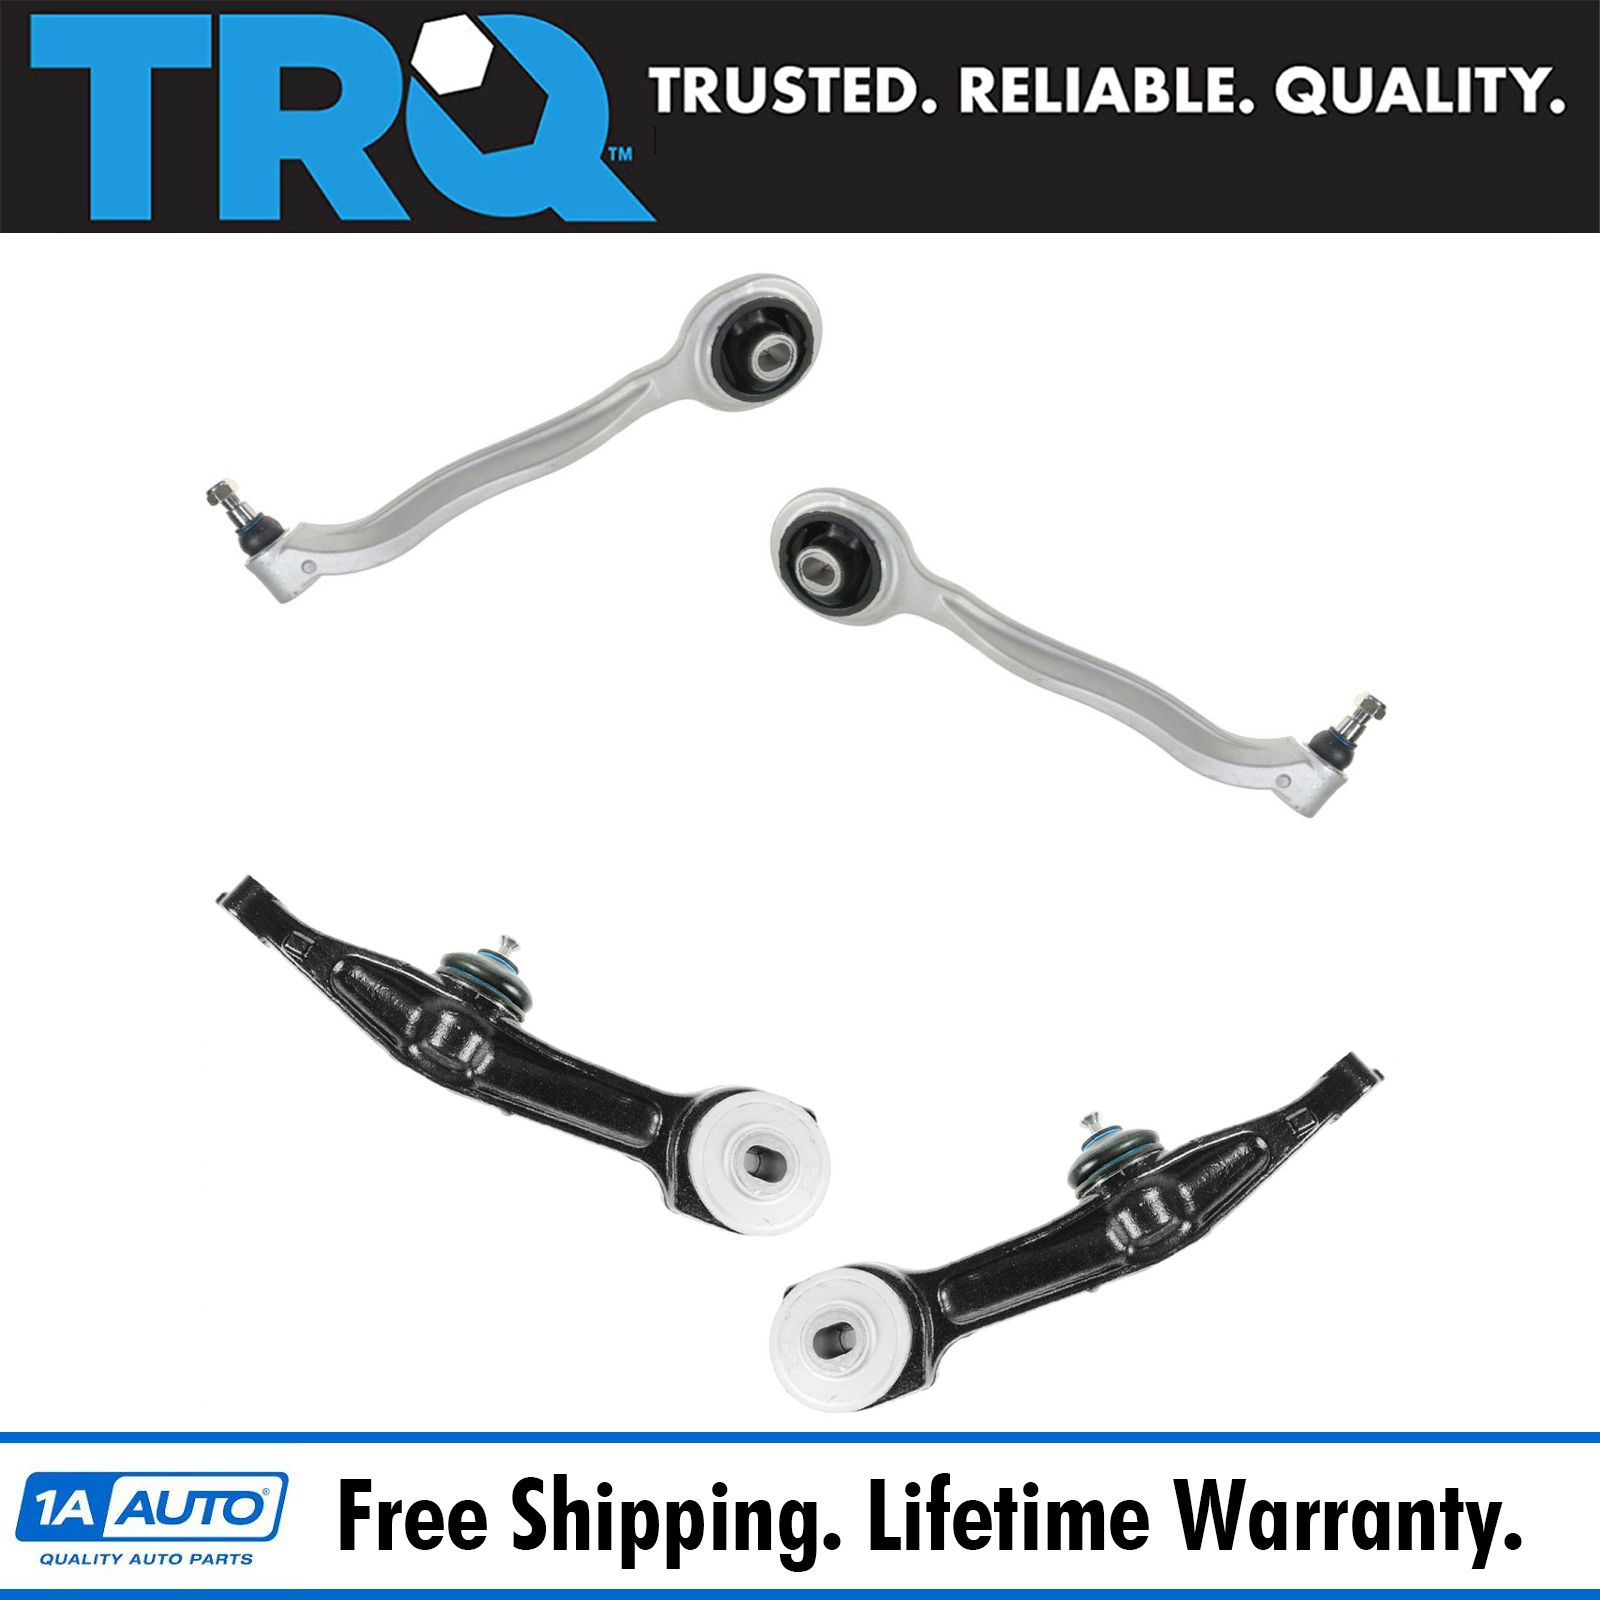 Front Lower Control Arm Ball Joint Suspension Kit Set 4pc for Regal Lumina Monte